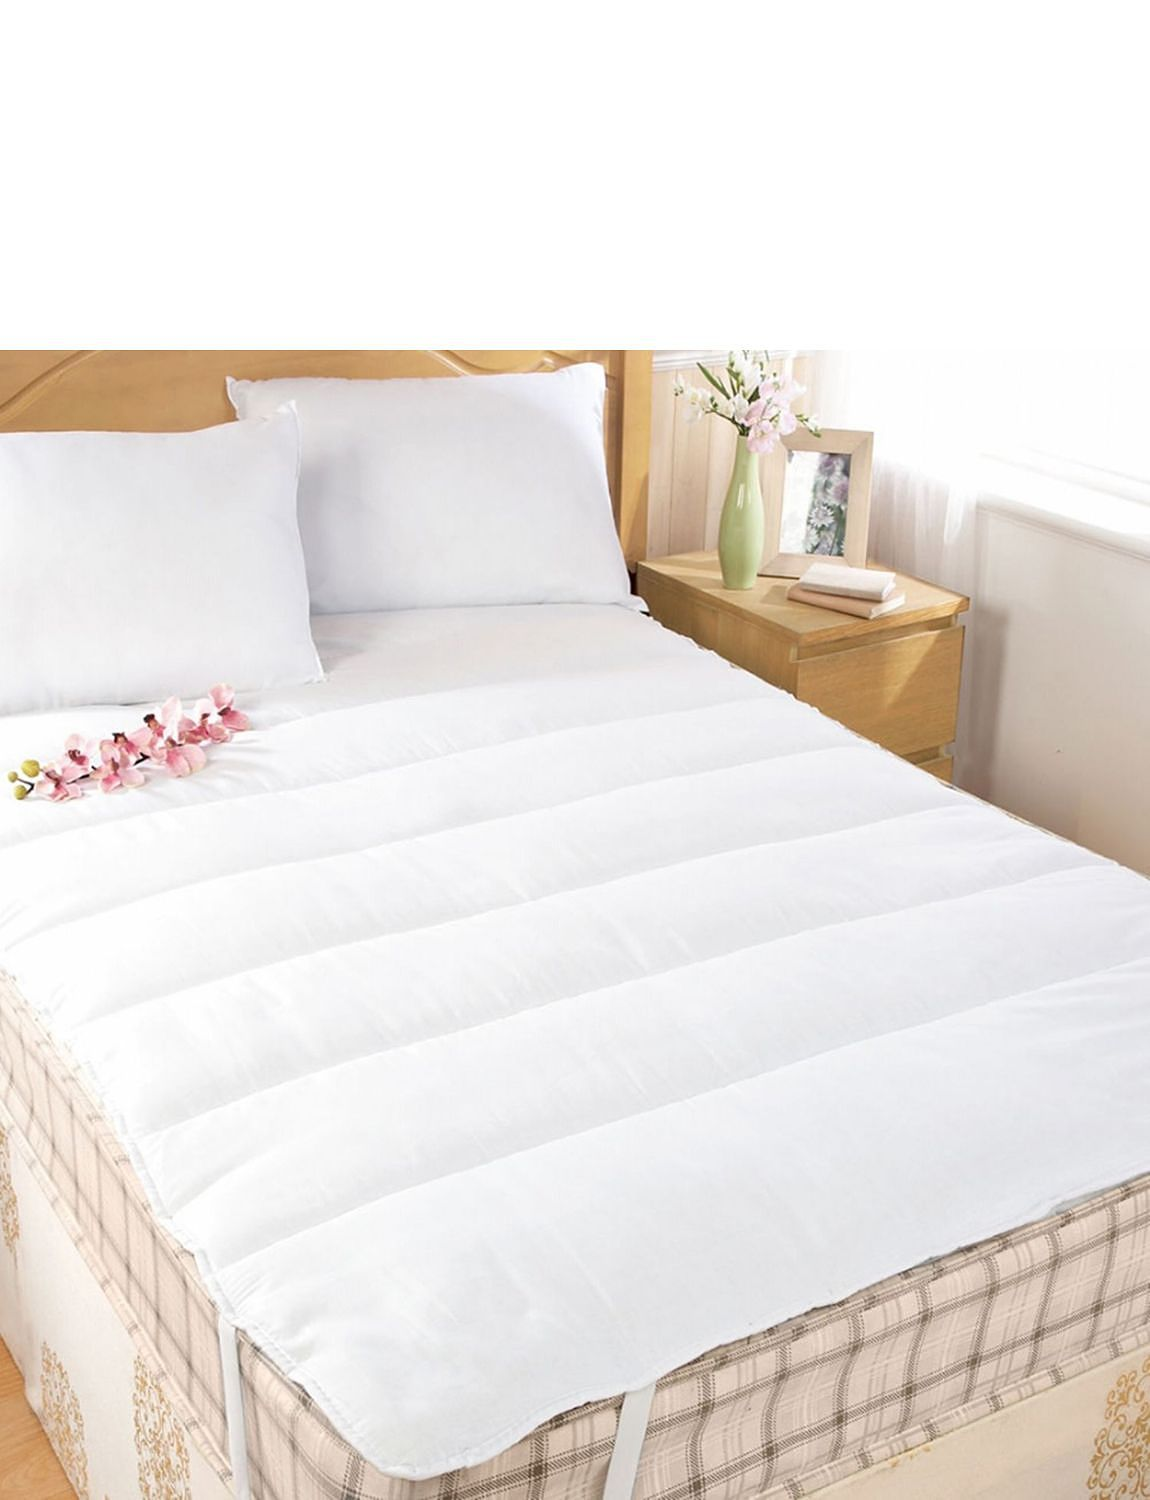 cooling mattress pads and toppers click image to read more